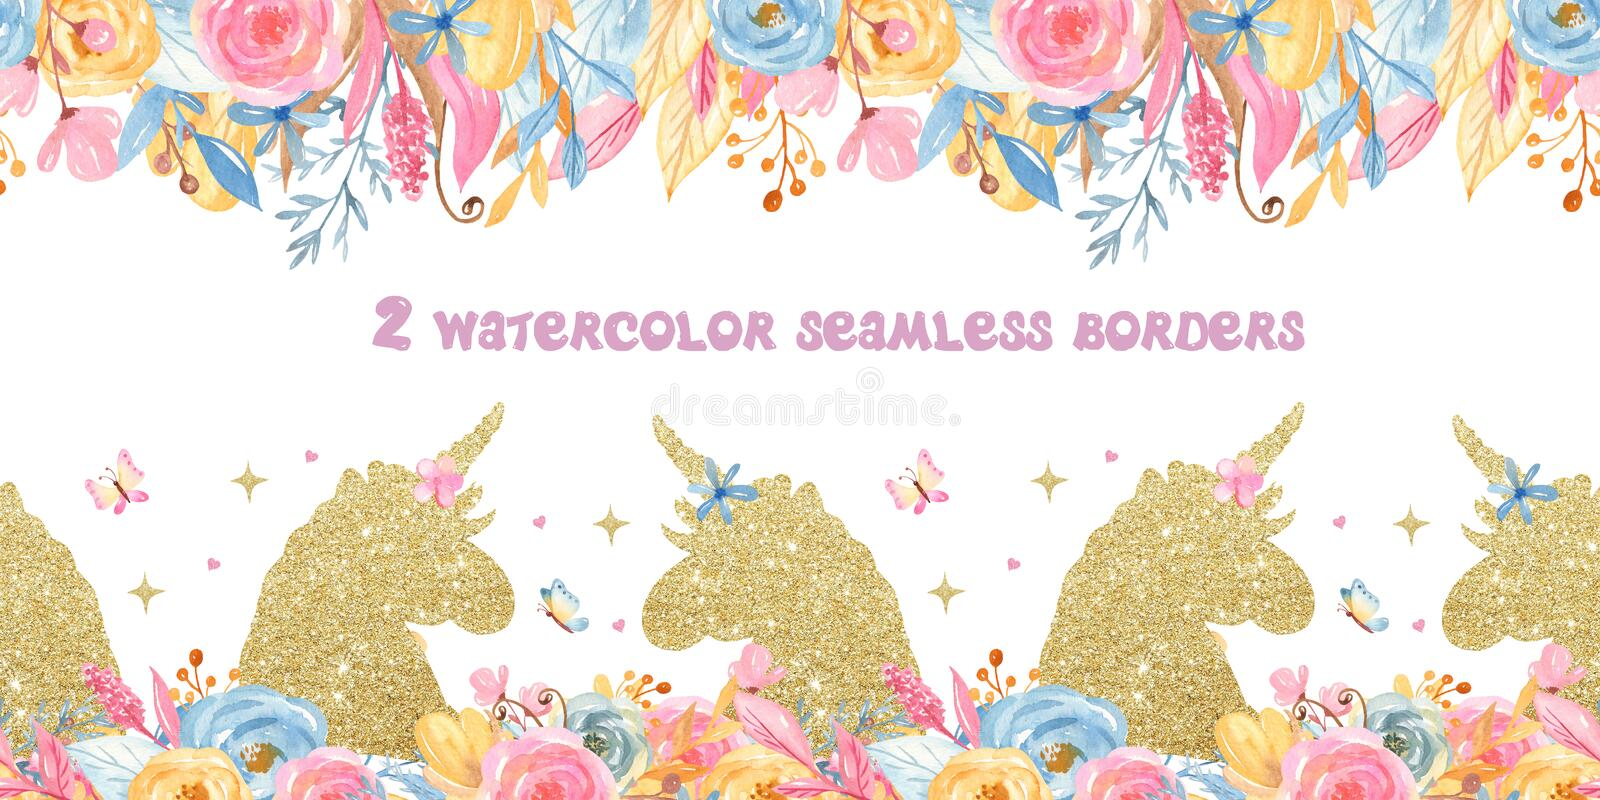 Watercolor seamless border with unicorns, flowers, rainbow, gold. vector illustration